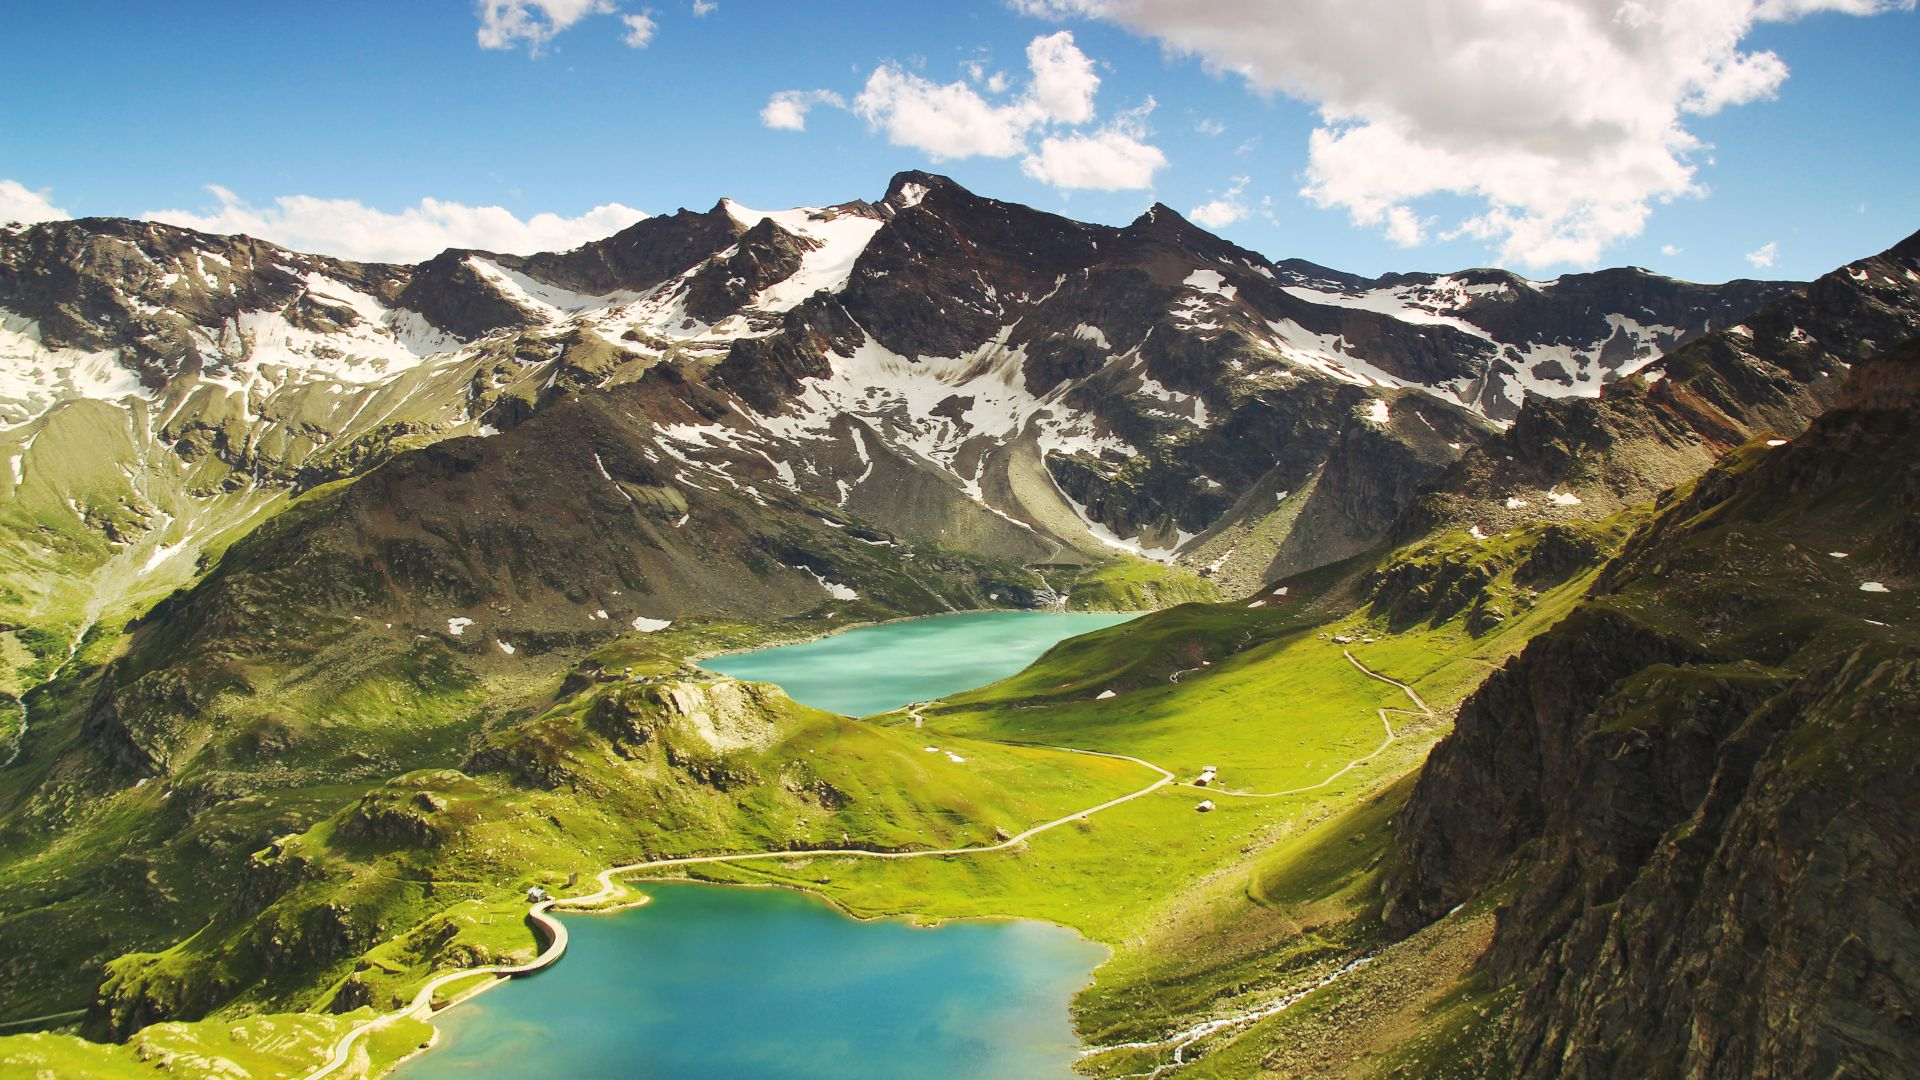 Ceresole Reale, Italy, mountains, lake, hills. clouds